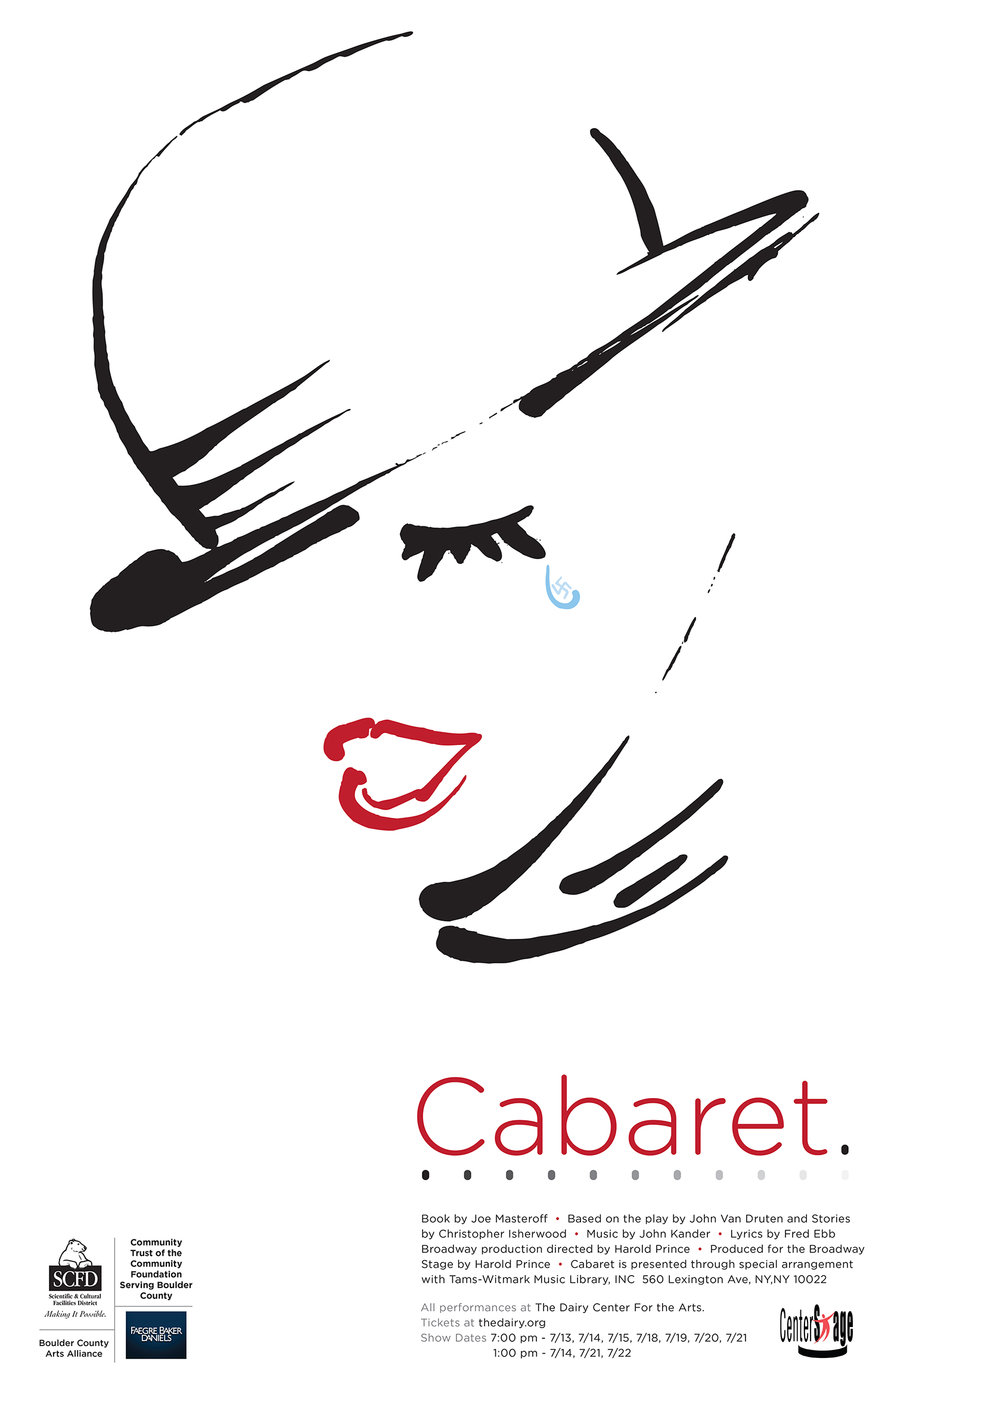 Poster promoting Cabaret the musical